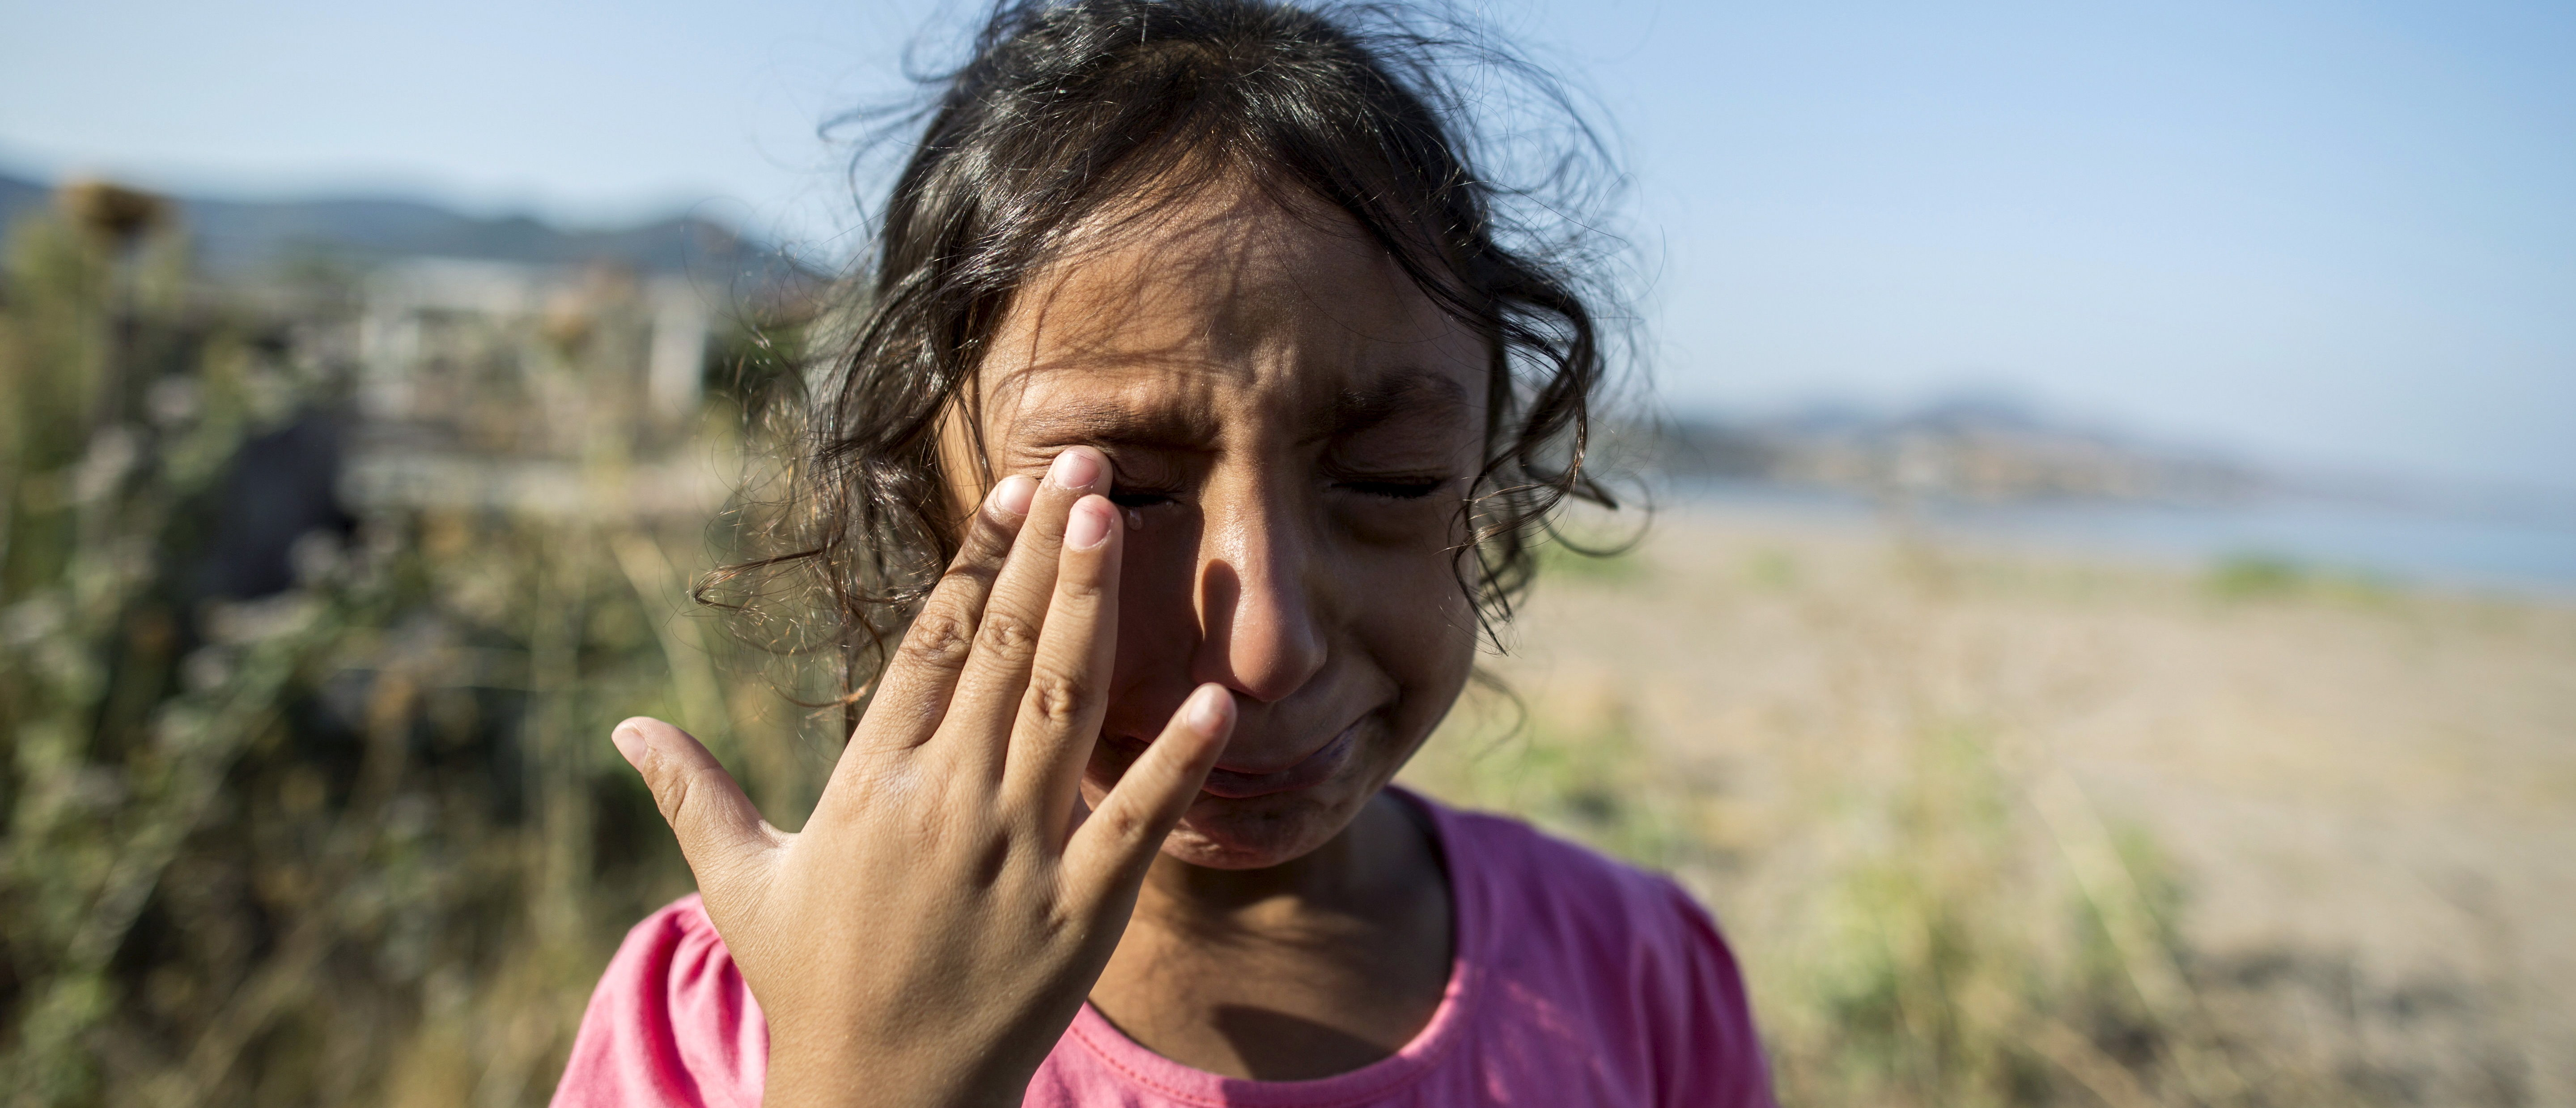 Yasmine, a 6-year-old migrant from Deir Al Zour in war-torn Syria, cries at the beach after arriving on the Greek island of Lesbos September 11, 2015. Yasmine said that the men who brought her family across the narrow sea between Bodrum in Turkey and this Greek tourist island threw away the dress her grandmother gave her. The crossing from Turkey and the eventual trip to Athens is only the beginning for Yasmine and other families. Ahead lies a trek north through Greece, up via Macedonia and Serbia to Hungary and on to Austria, Germany and more industrialised countries. Picture taken September 11, 2015. REUTERS/Zohra Bensemra - GF10000206087